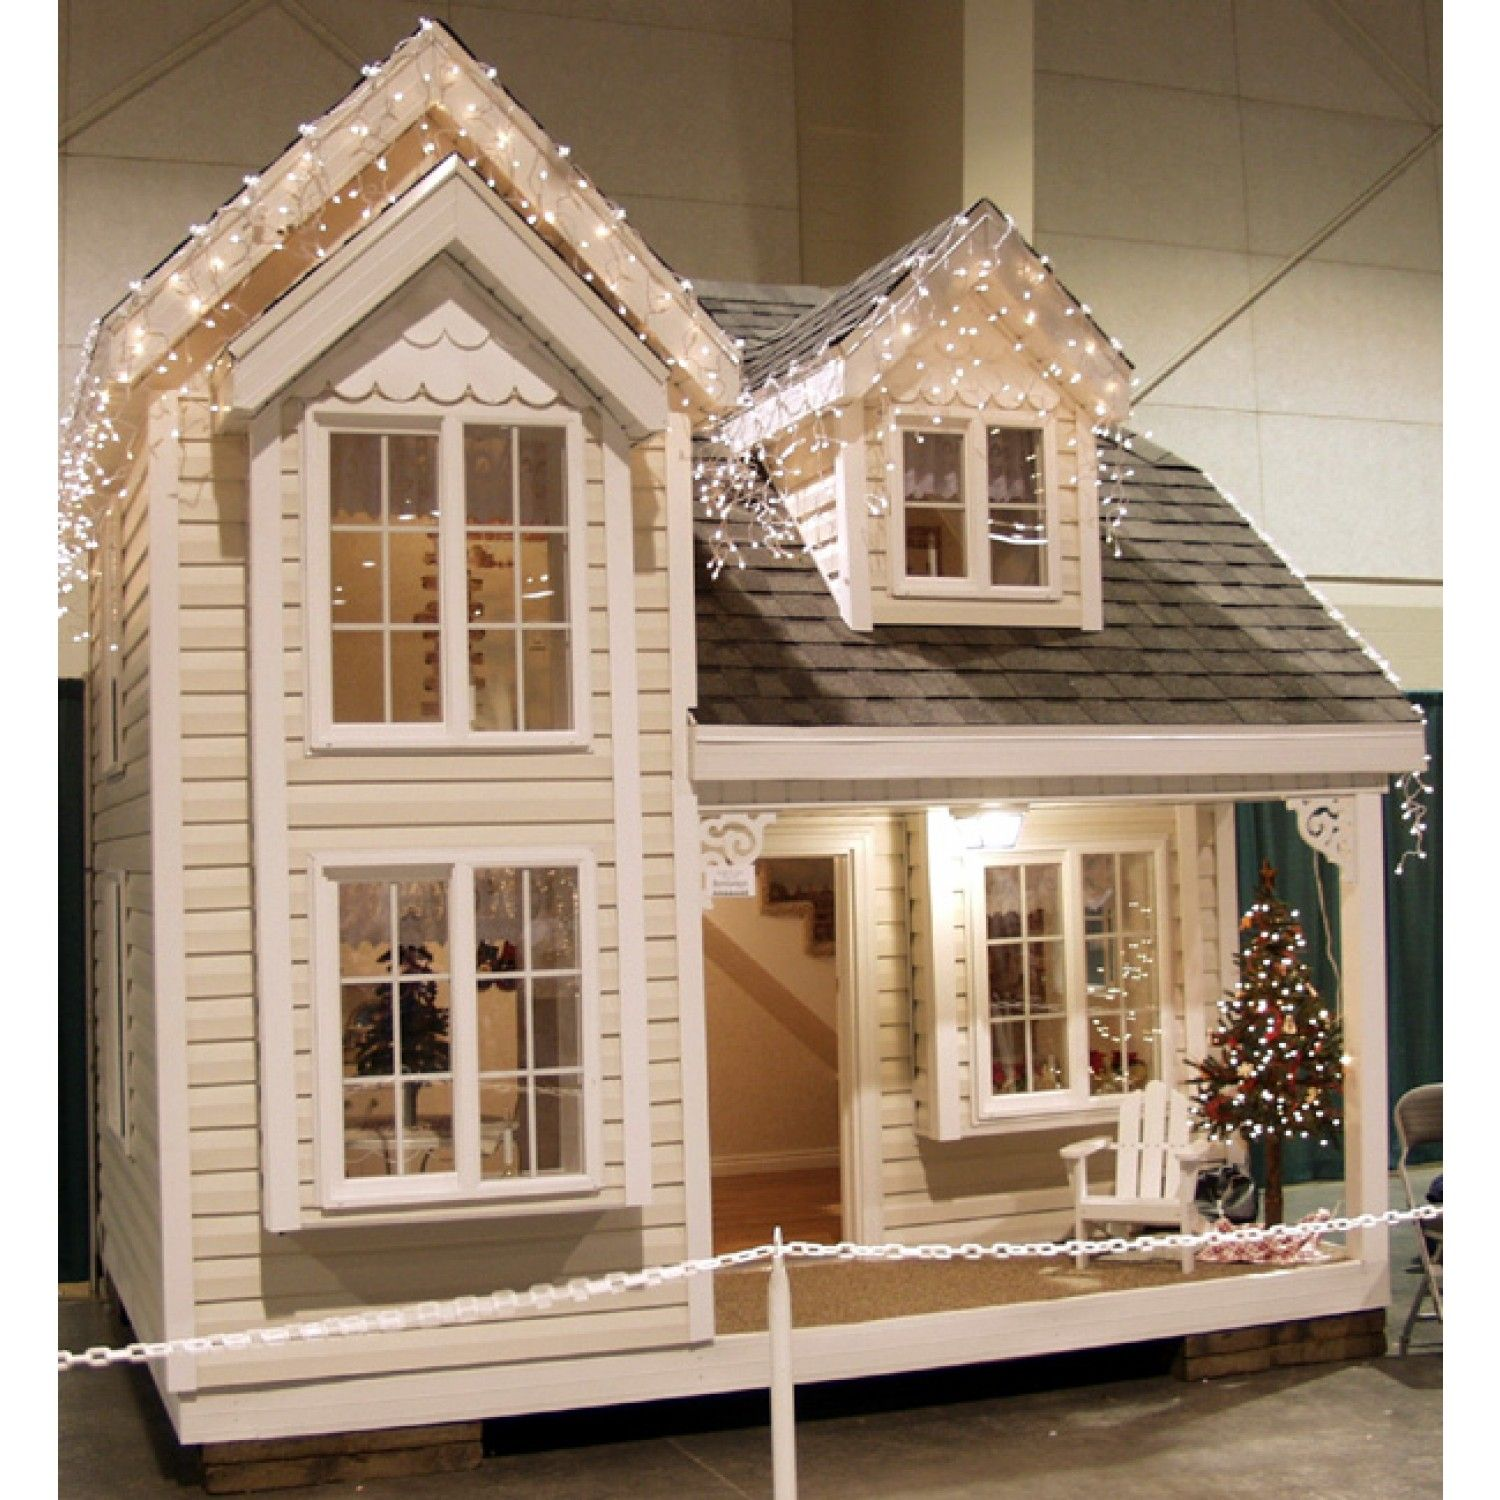 77313c415665447a032fc994f5155492 Build Outside Kitchen Ideas on build outside deck, build outside bar, build outside house, build outside christmas, build outside furniture, build outside sauna, build outside garden,